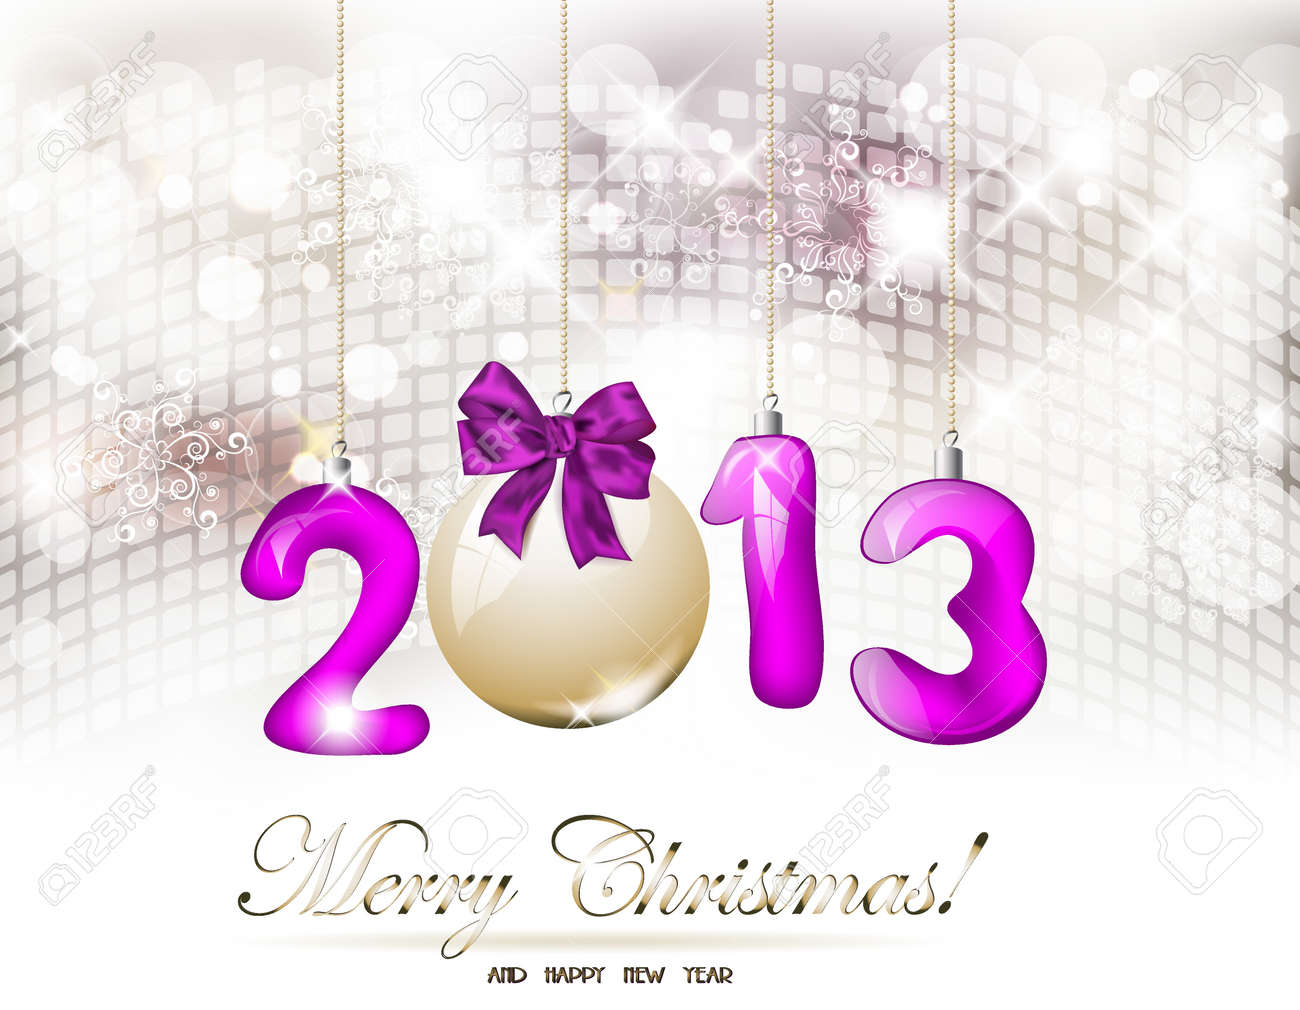 2013 Happy New Year greeting card Stock Vector - 16458196